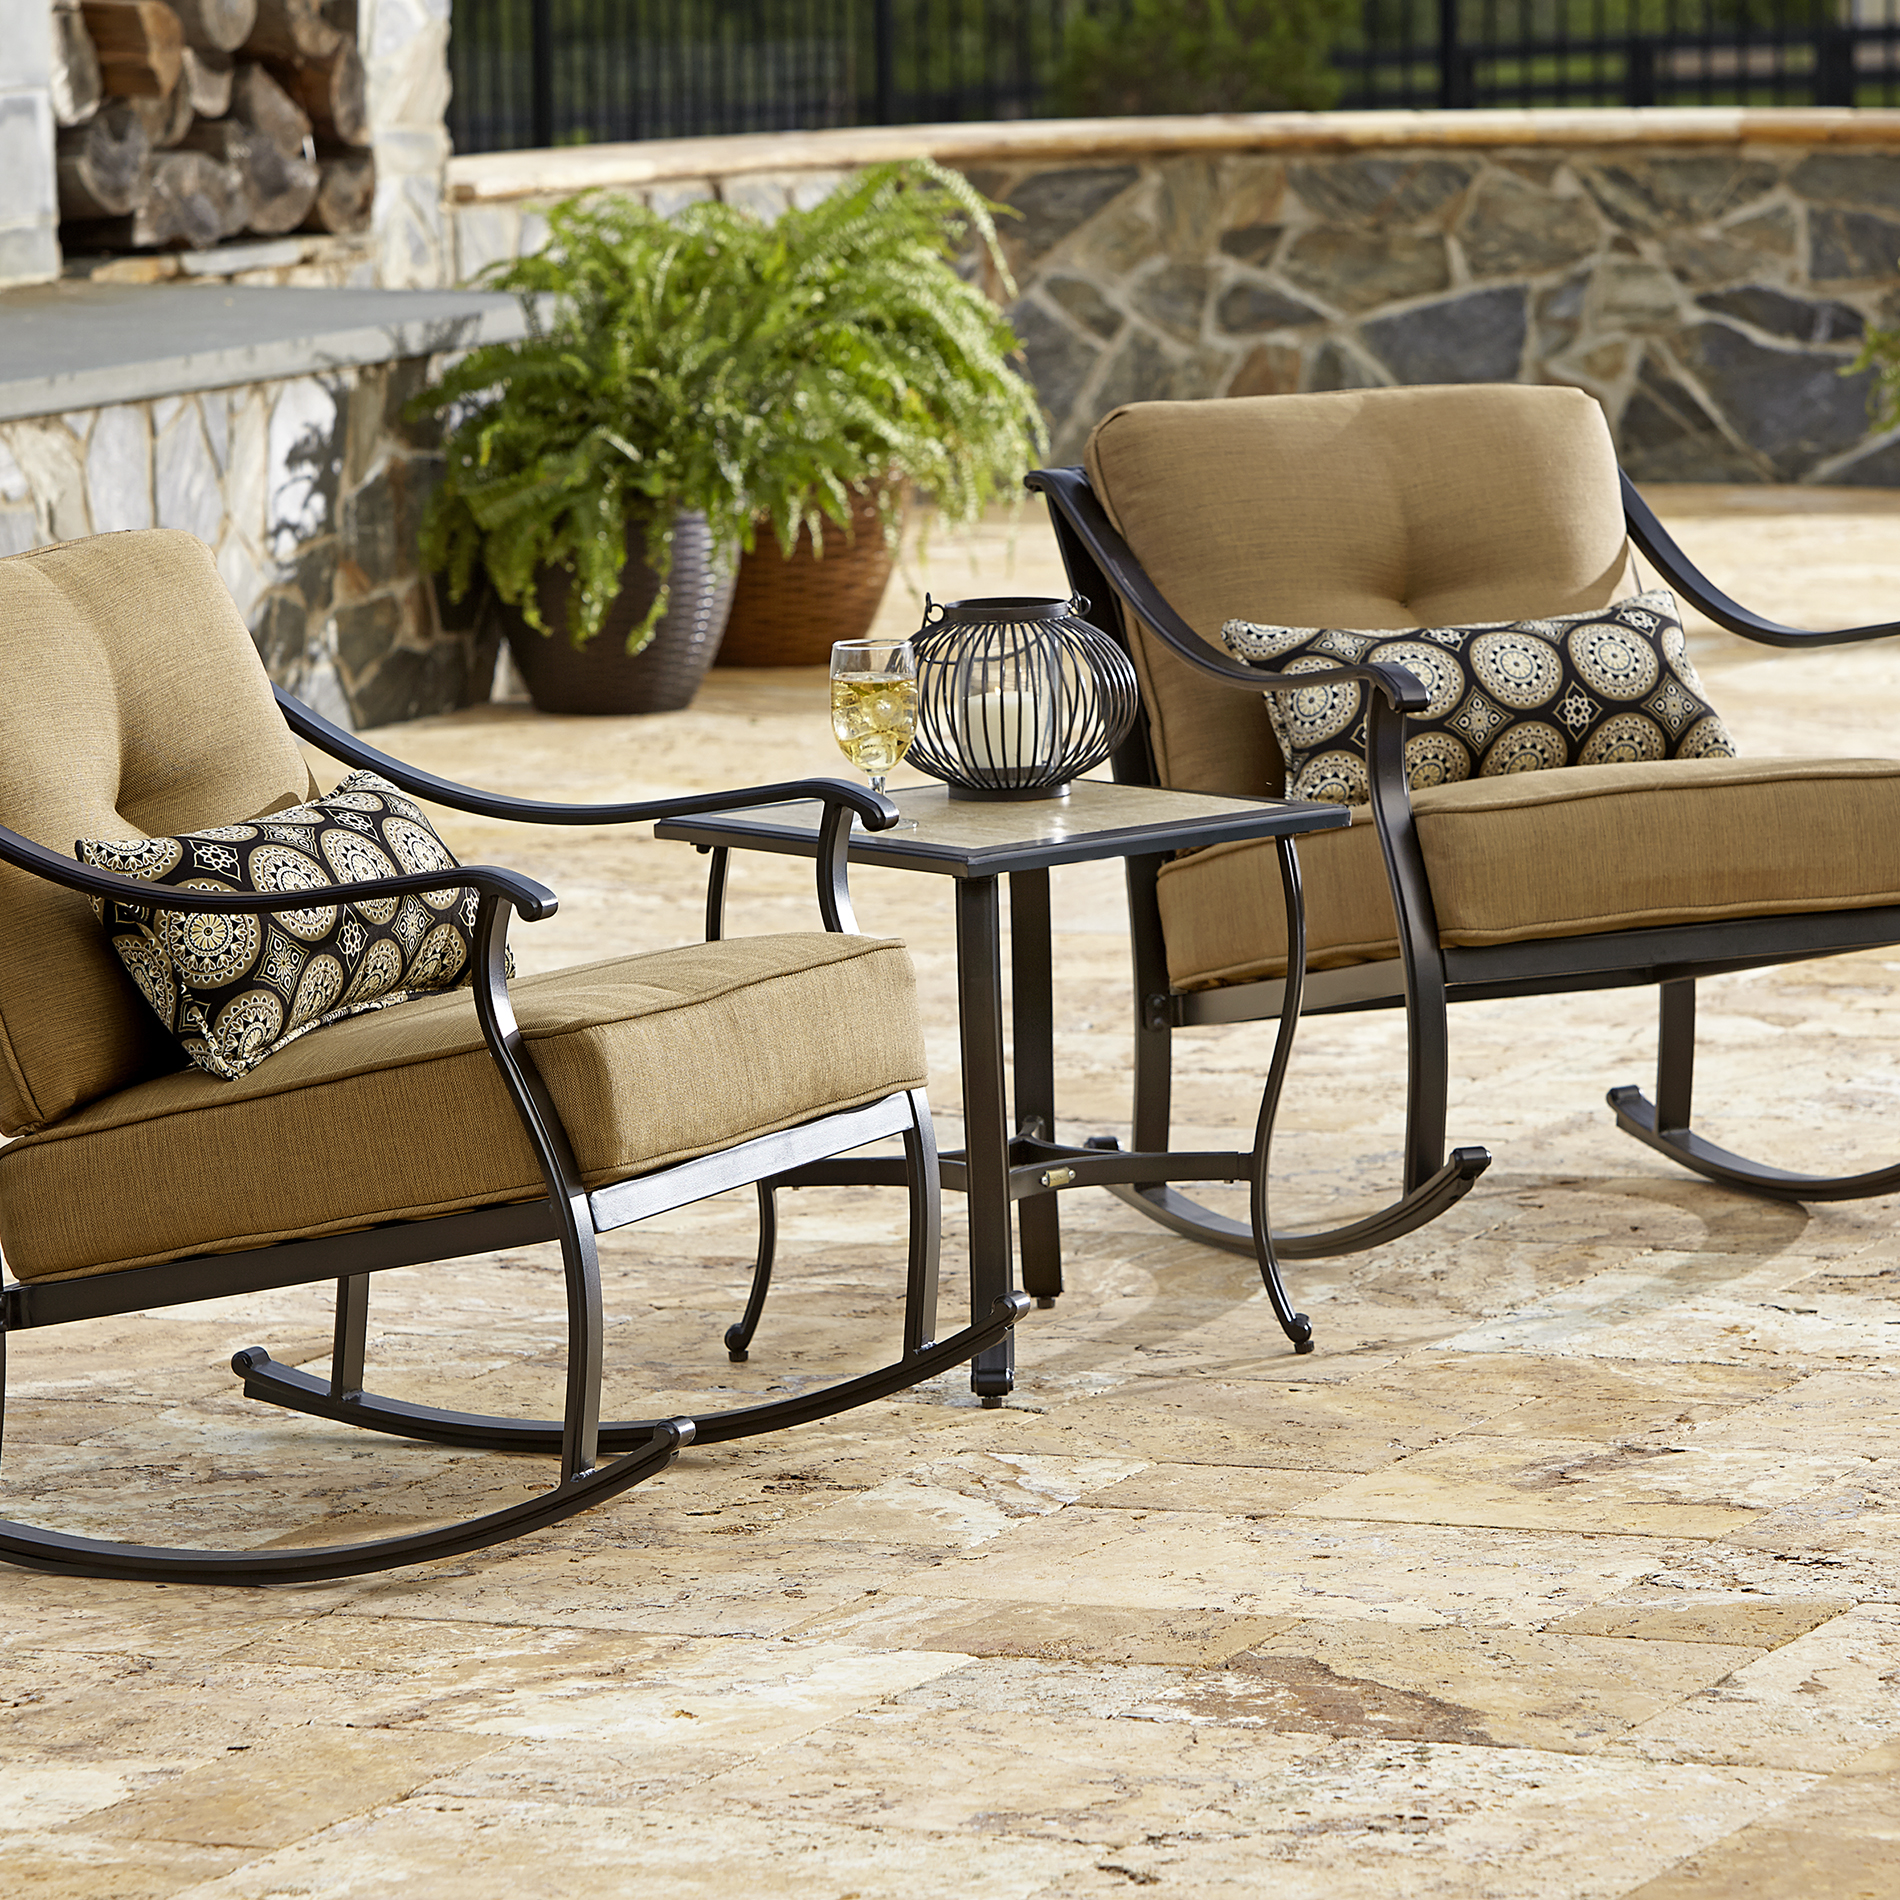 La Boy Outdoor Landon 3 Piece Bistro Set - Limited